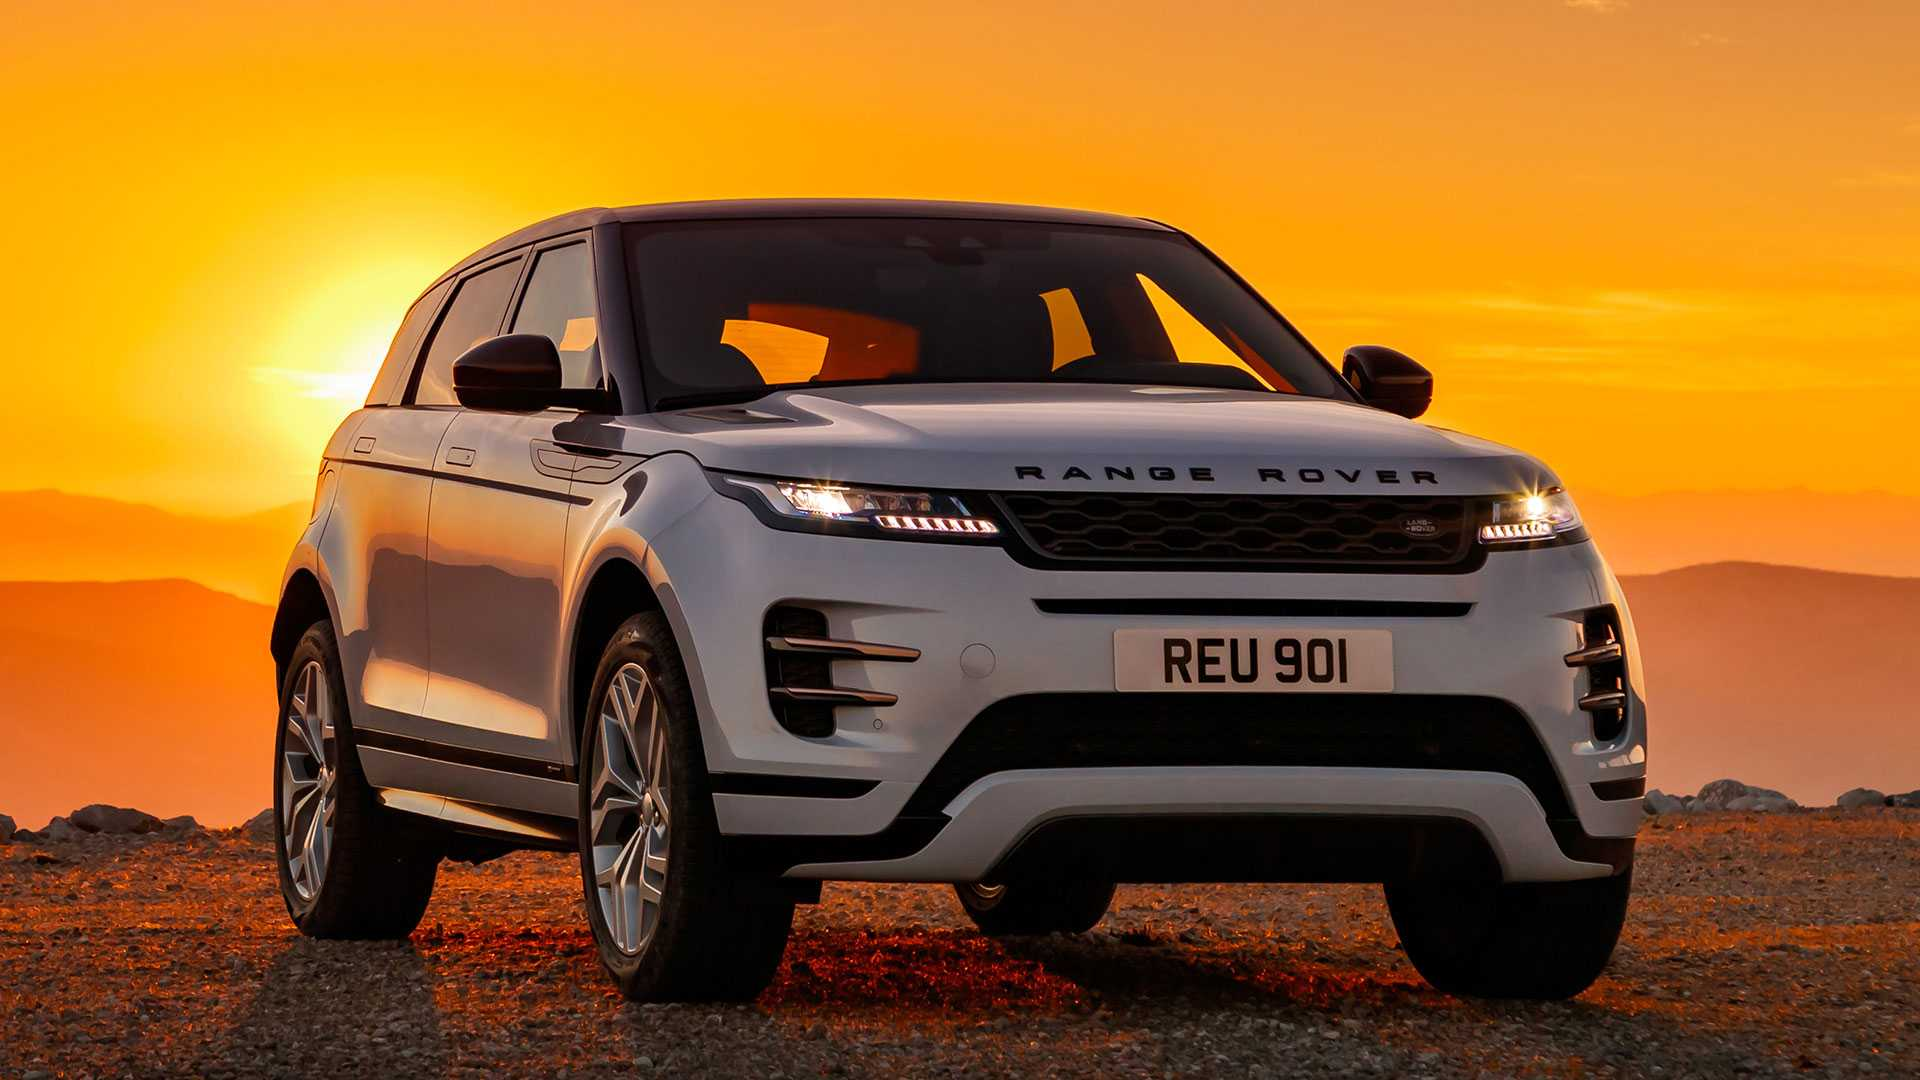 96 The 2020 Range Rover Evoque Review And Release Date